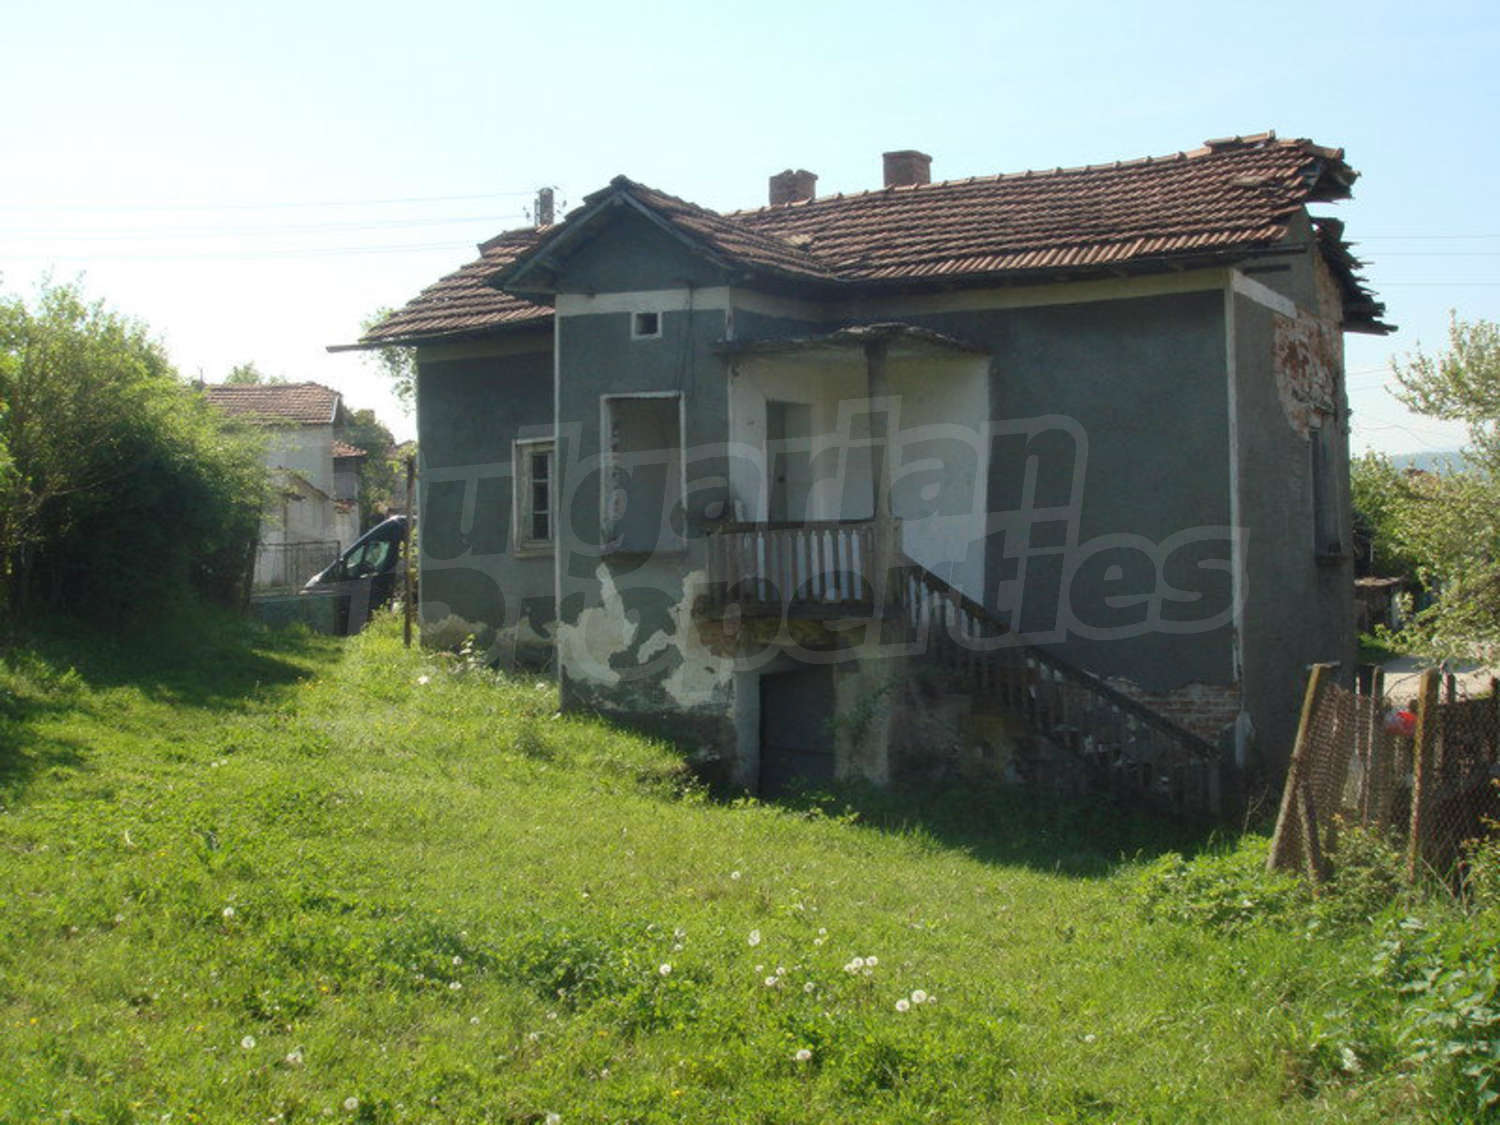 House for sale near lovech bulgaria a plot of land with old house in a small town 33 km of - Houses for small plots of land ...